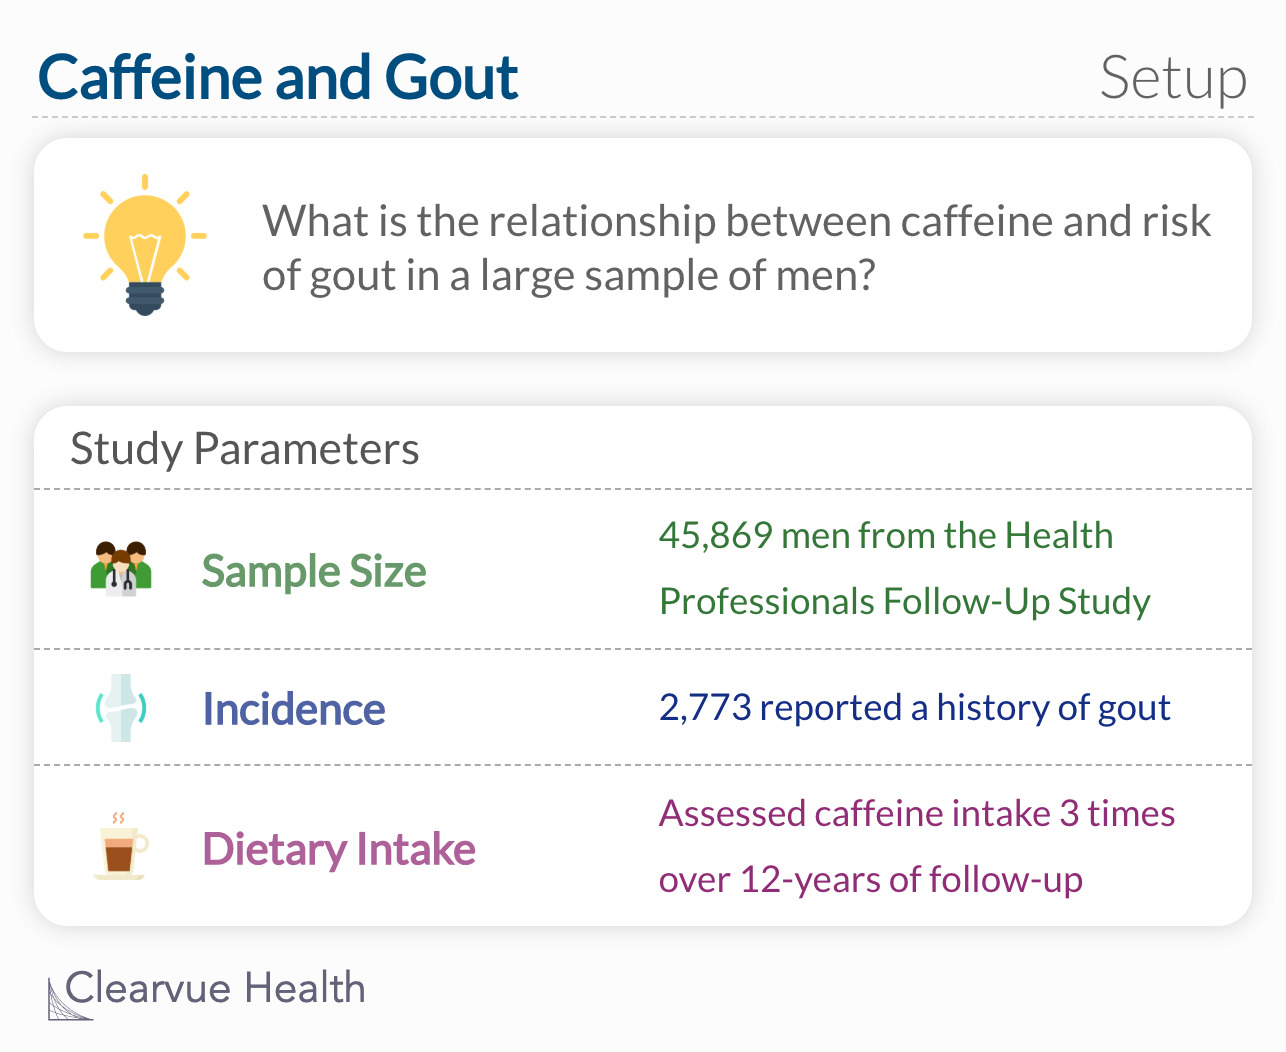 What is the relationship between coffee intake and the risk of incident gout in a large cohort of men?